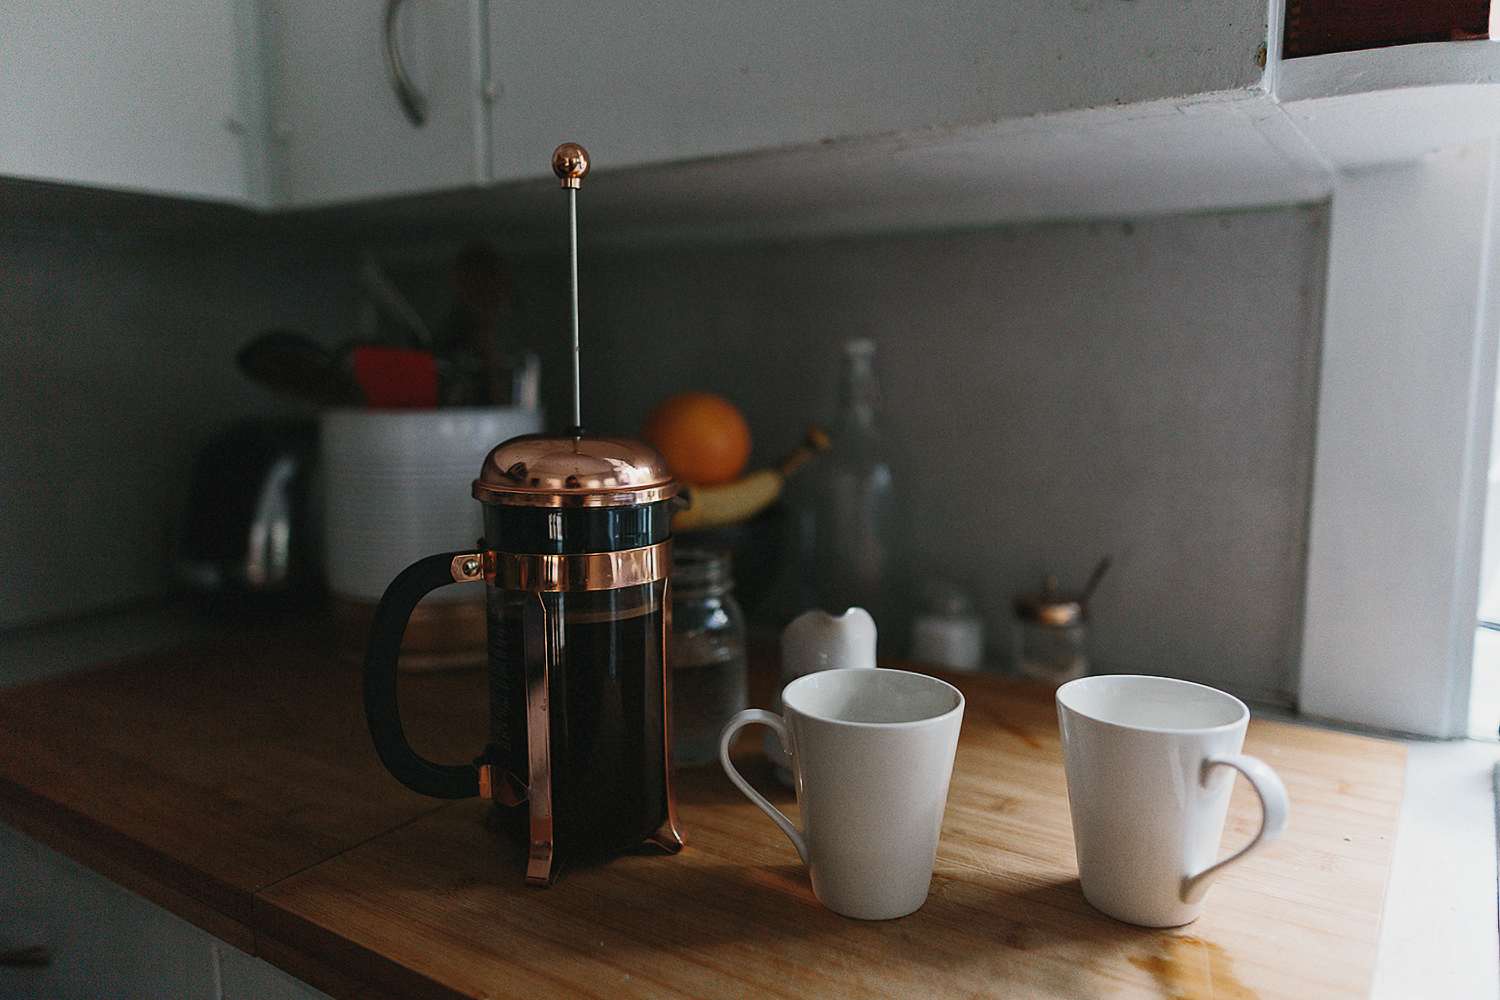 hamilton-toronto-vintage-old-home-rustic-inhome-maternity-session-toronto-maternity-photographer-ryanne-hollies-photography-details-kitchen-make-coffee-french-press.jpg